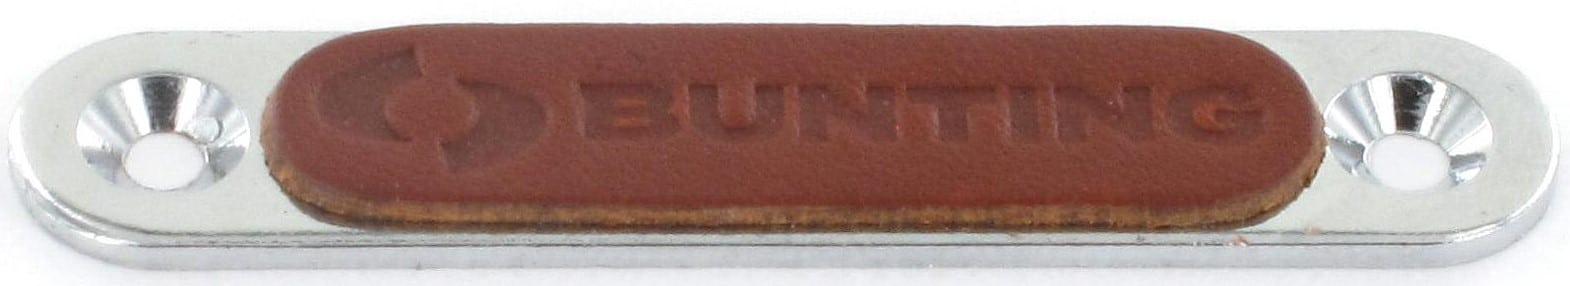 Embossed catchplate